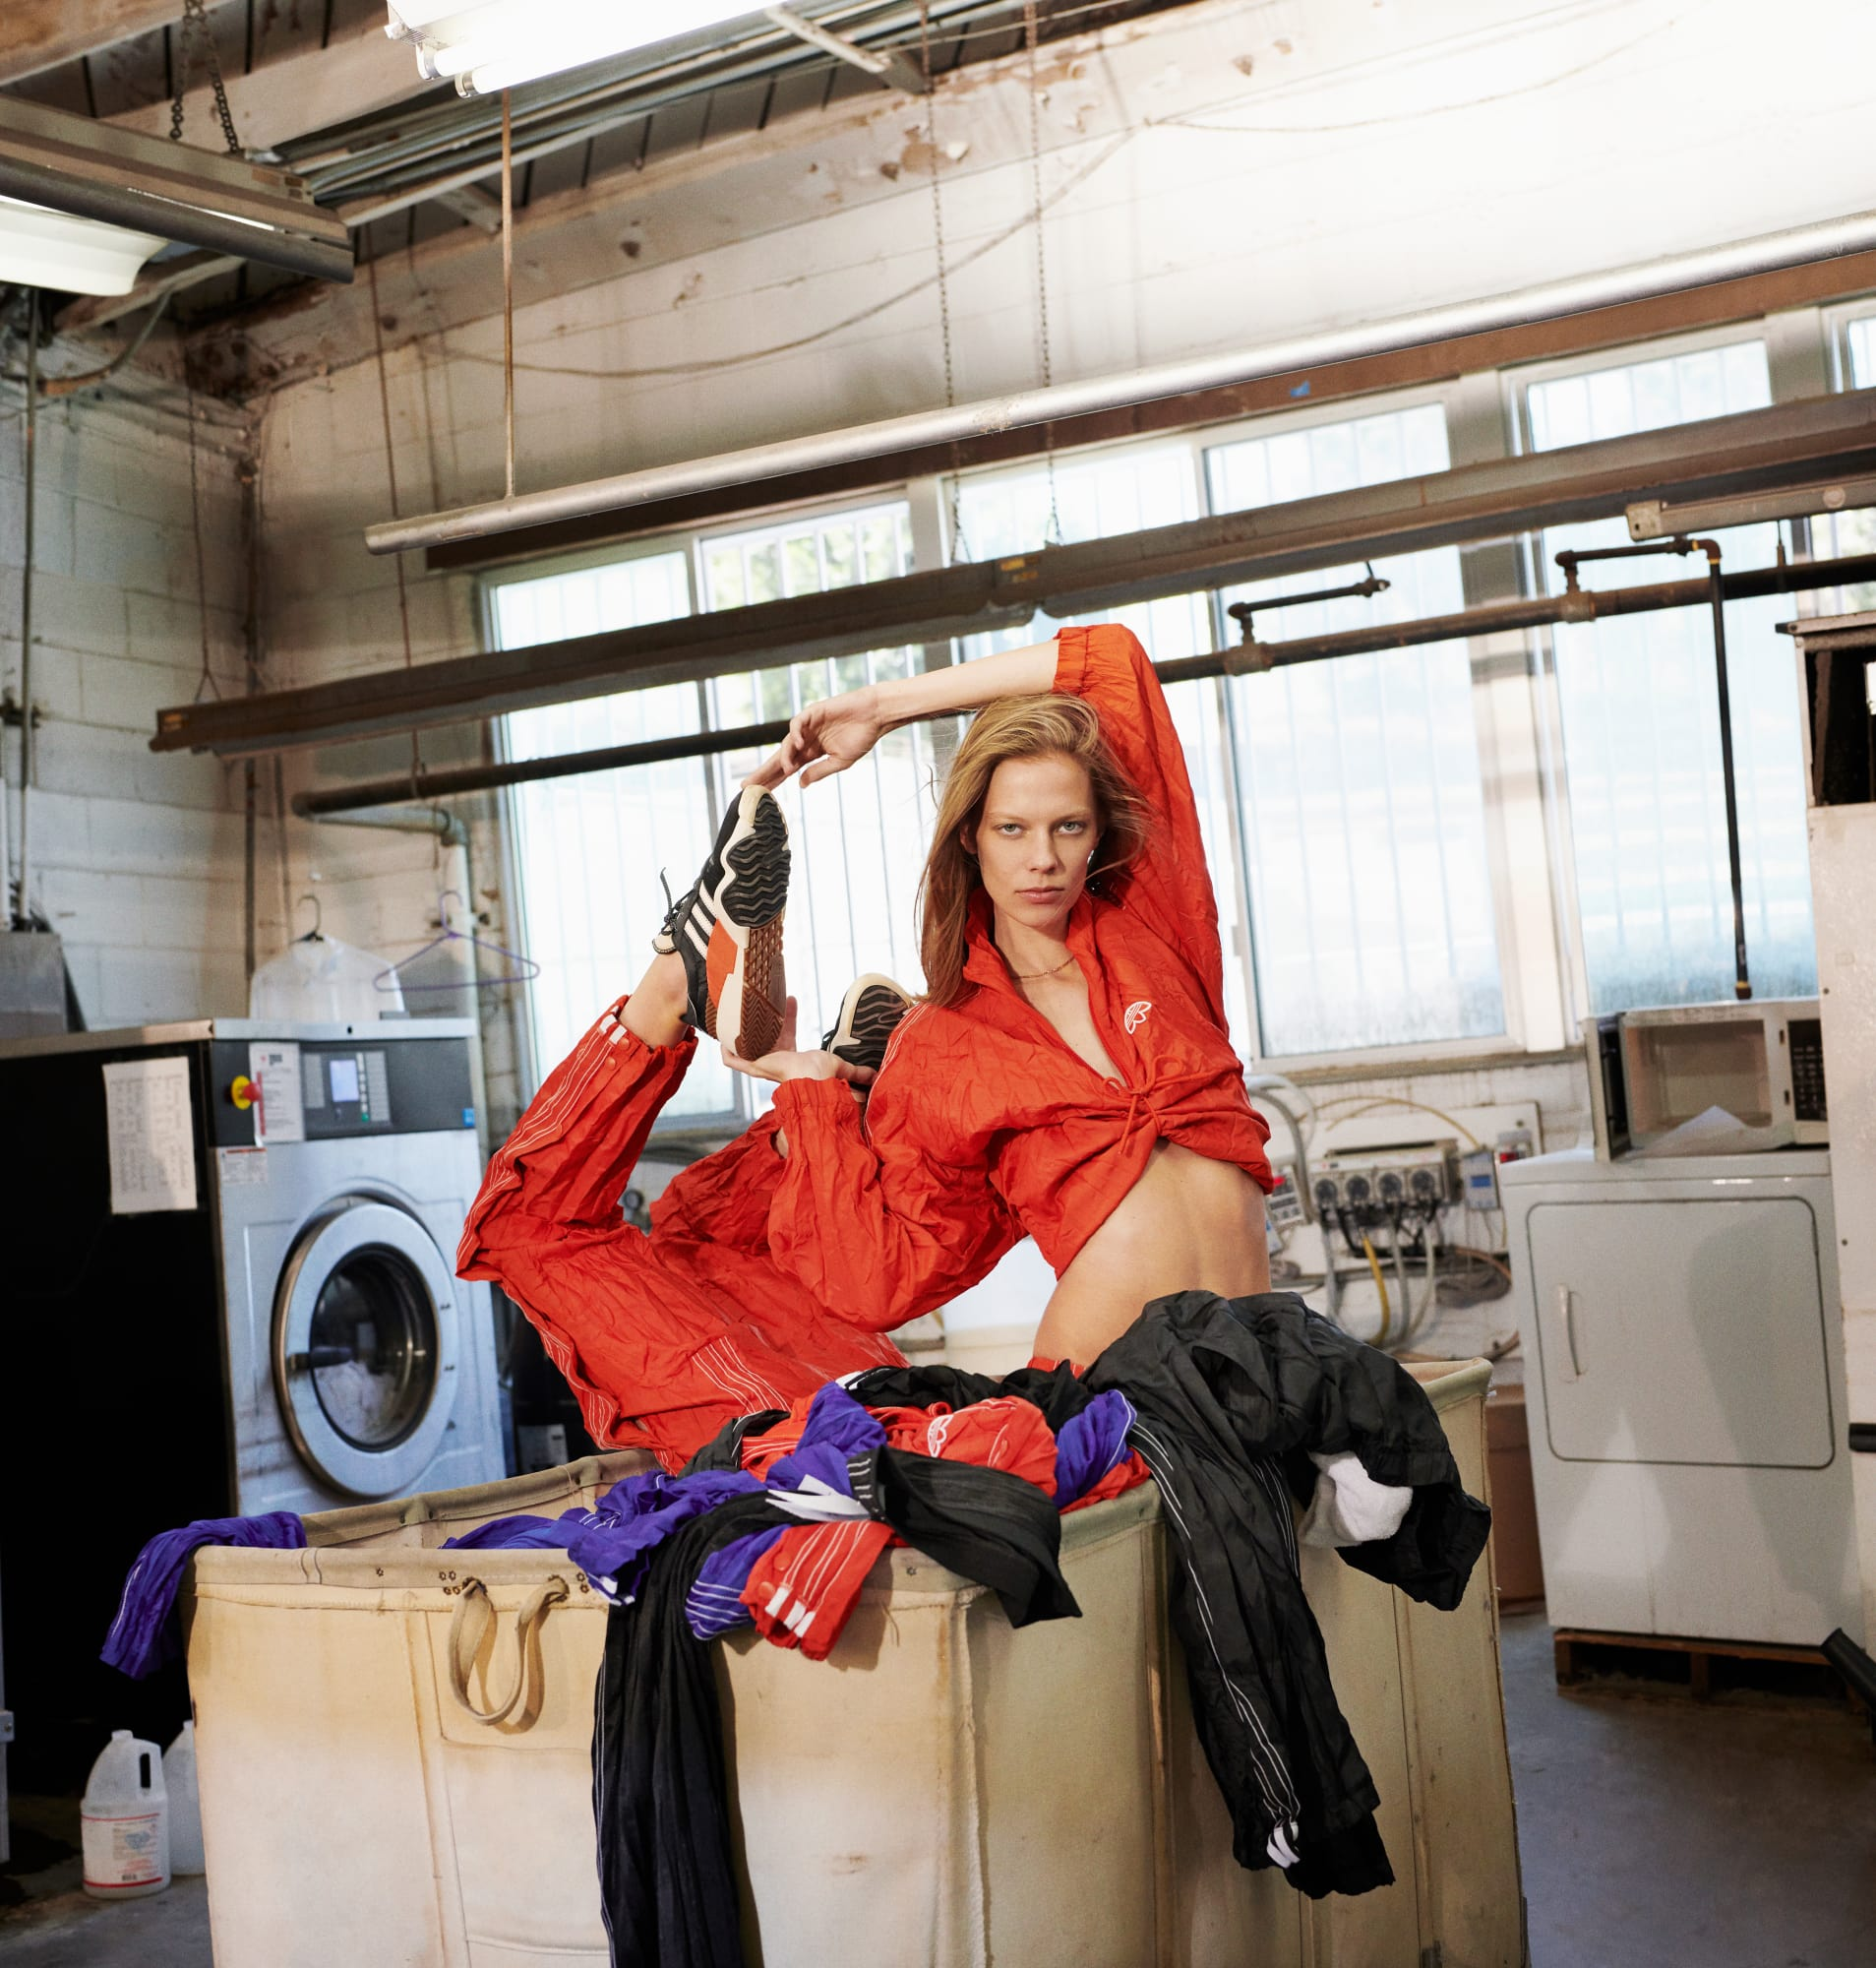 more photos c53e1 f5a25 ... a factory-based office, and now, an industrial laundromat, where Lexi  Boling and Cat McNeil pose and play dress-up on ironing boards, countertops  and ...